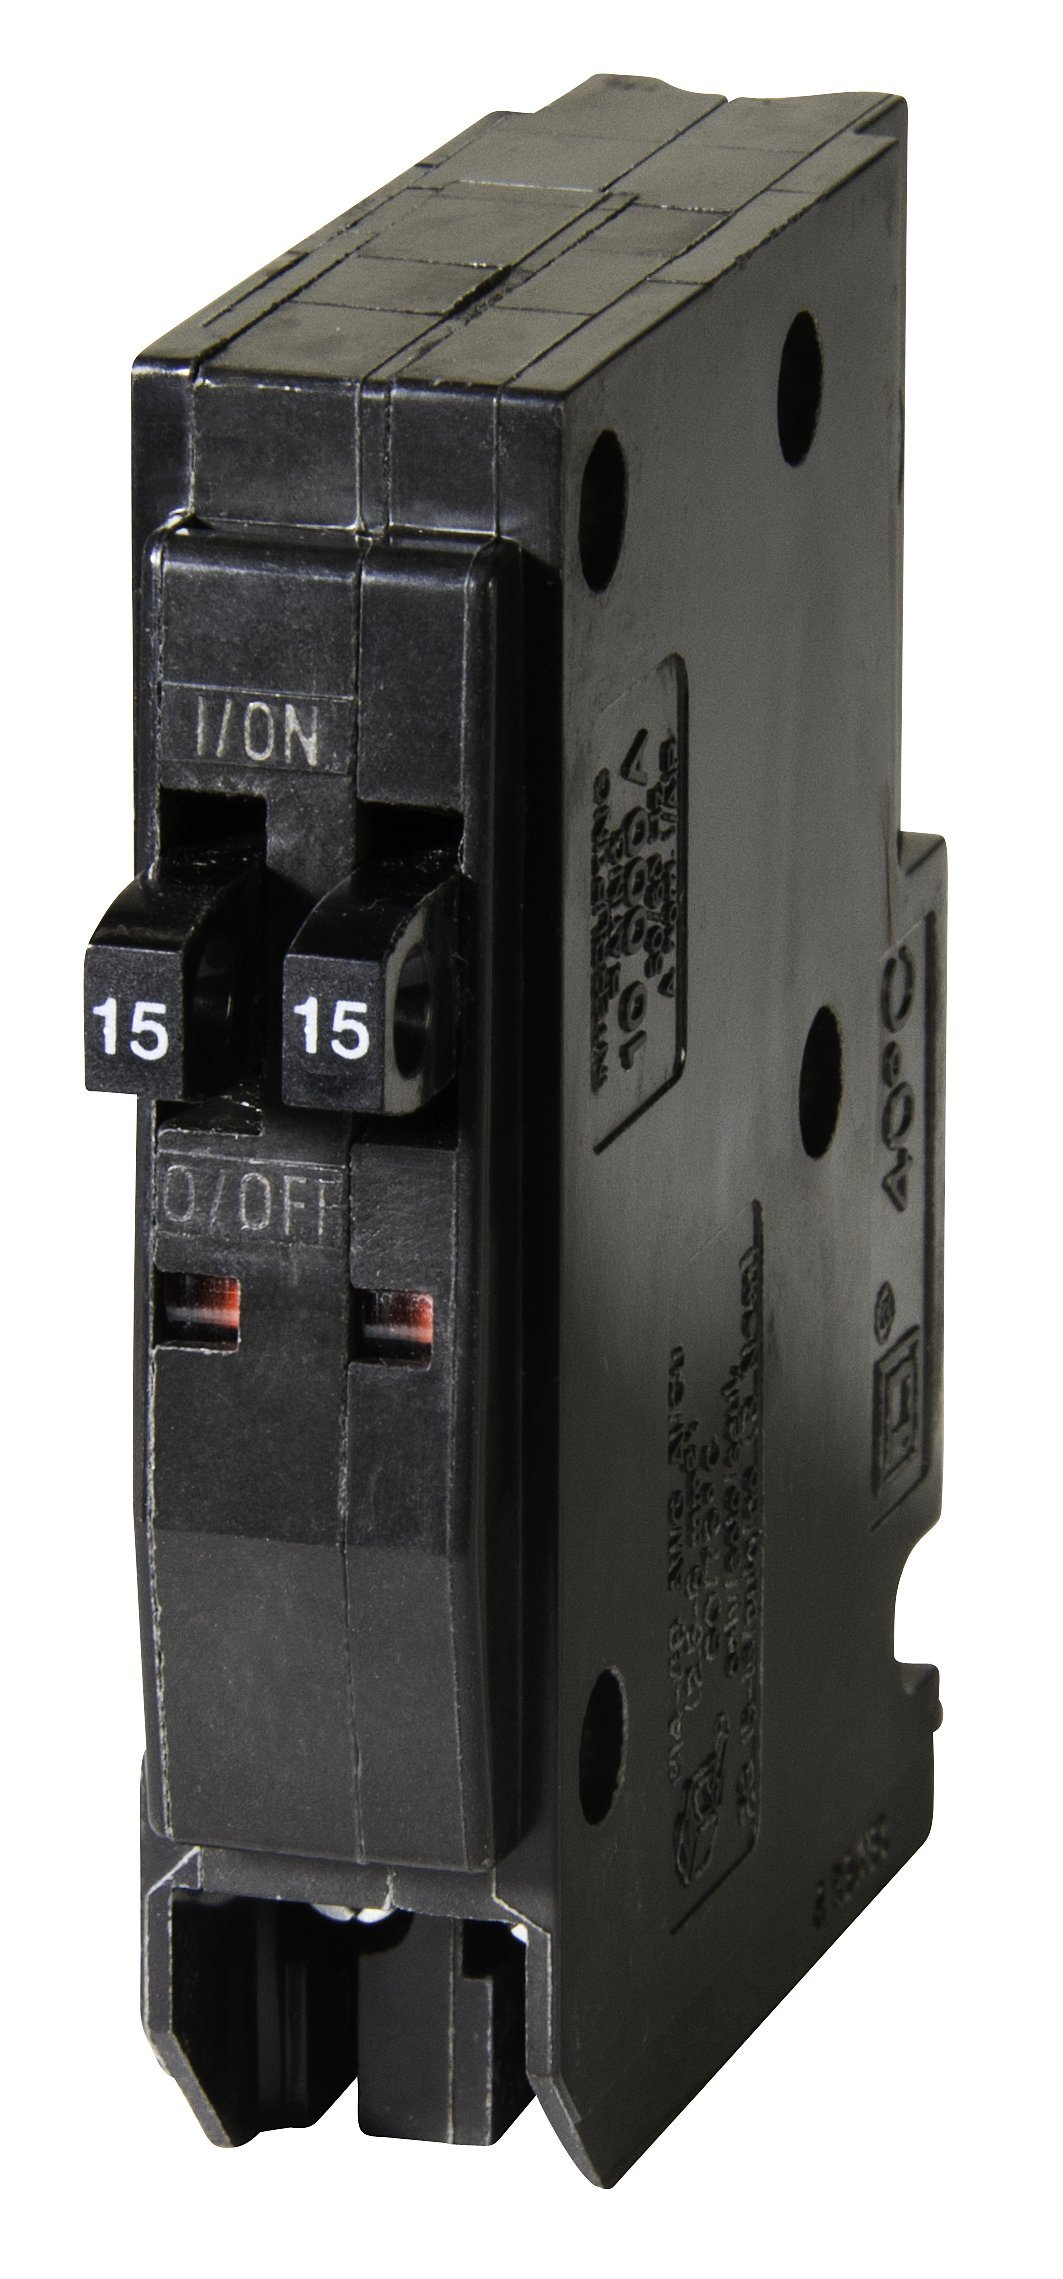 Square D by Schneider Electric QOT1515CP QO 2-15 Amp Single-Pole Tandem Circuit Breaker